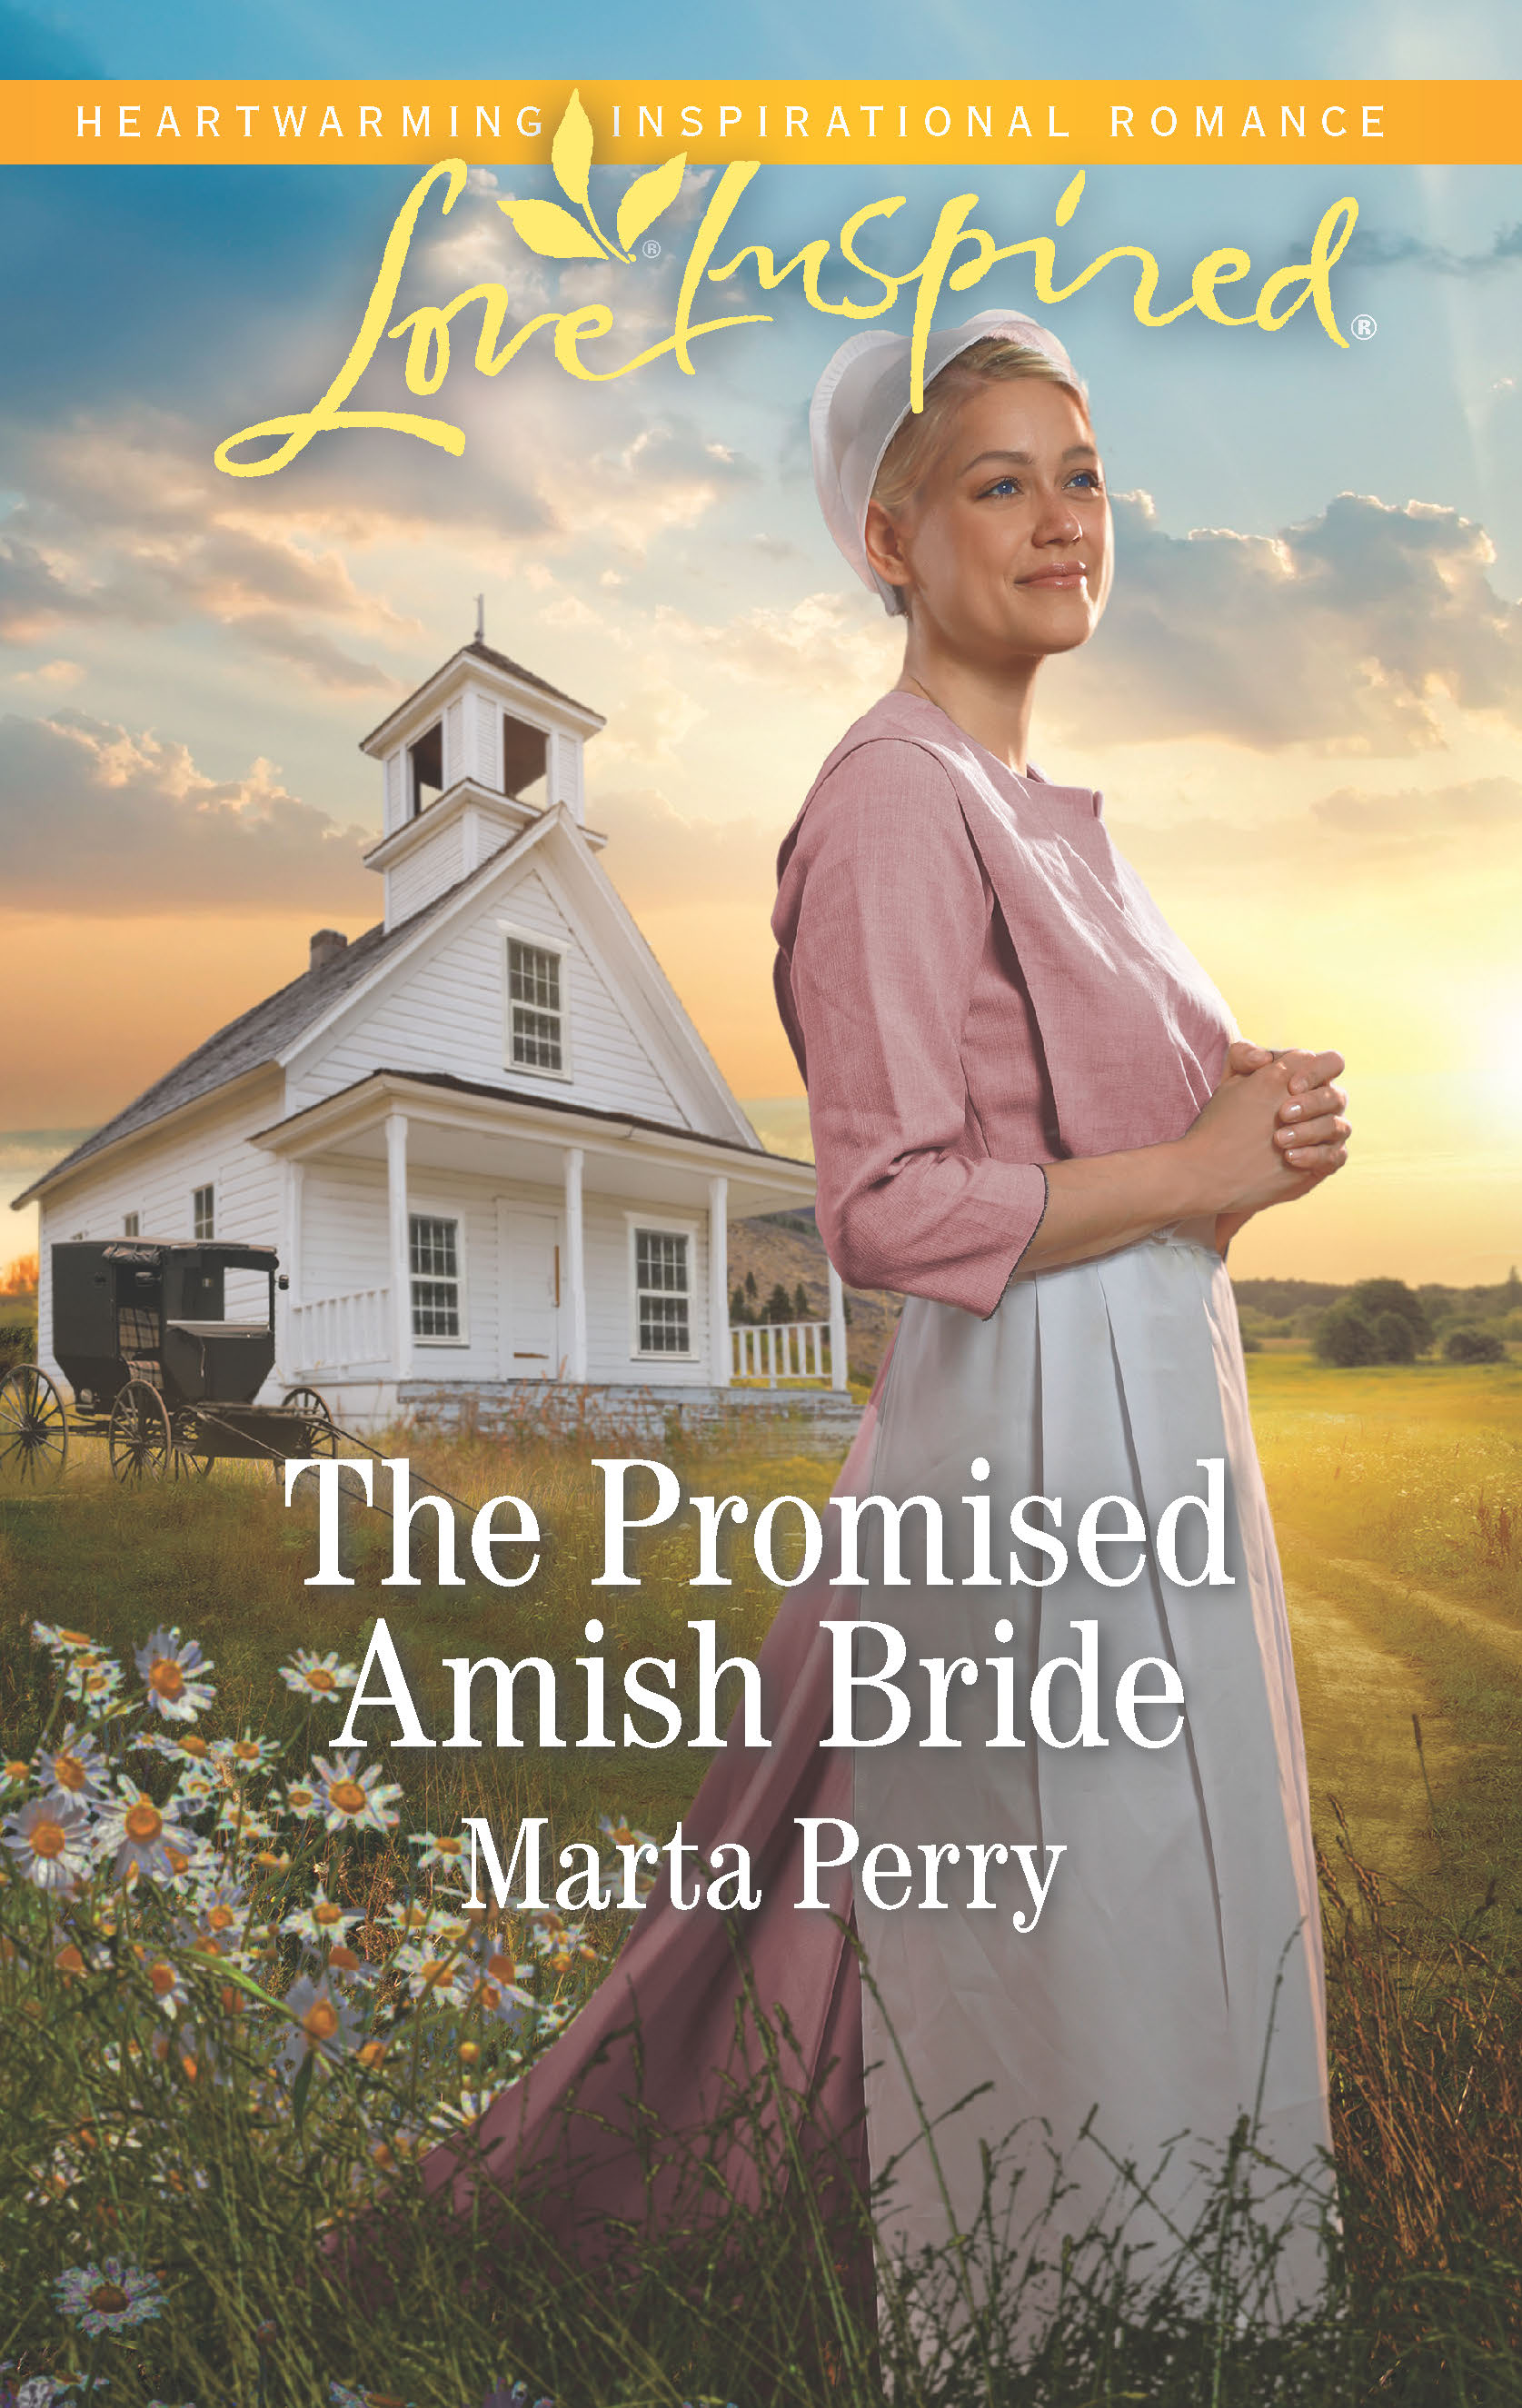 Love Inspired Inspirational Romance author Marta Perry - The Promised Amish Bride book cover